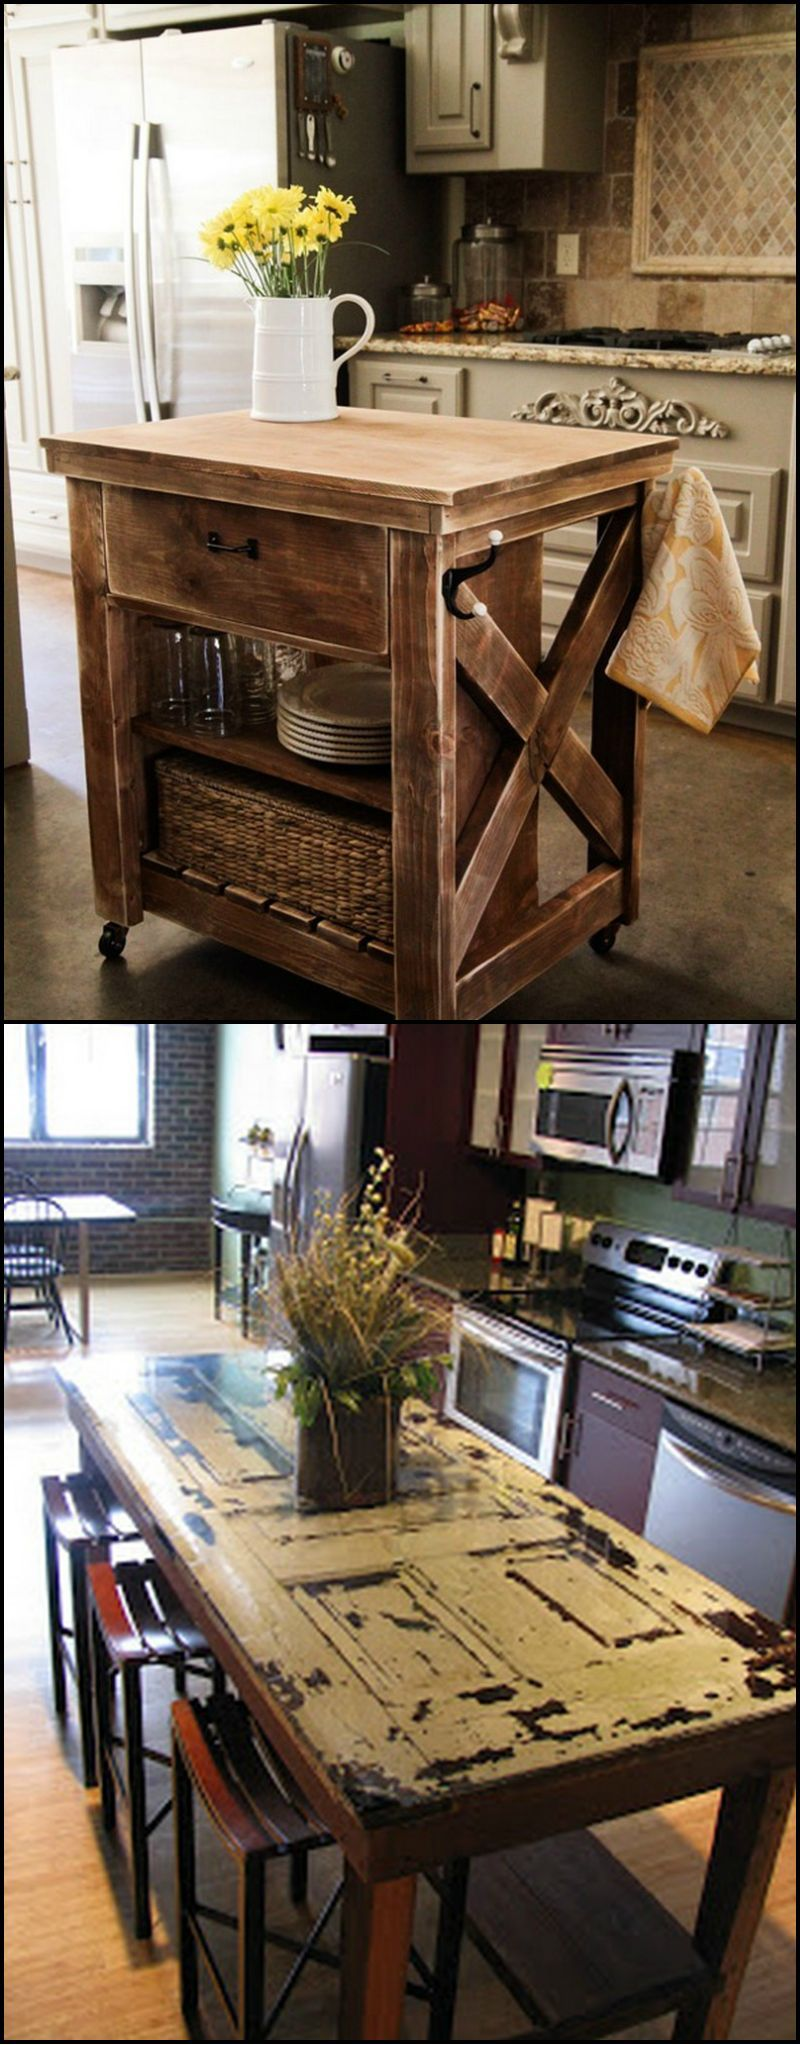 Adding or getting a new kitchen island can be expensive unless you build or upgrade your for Upgraded kitchen ideas